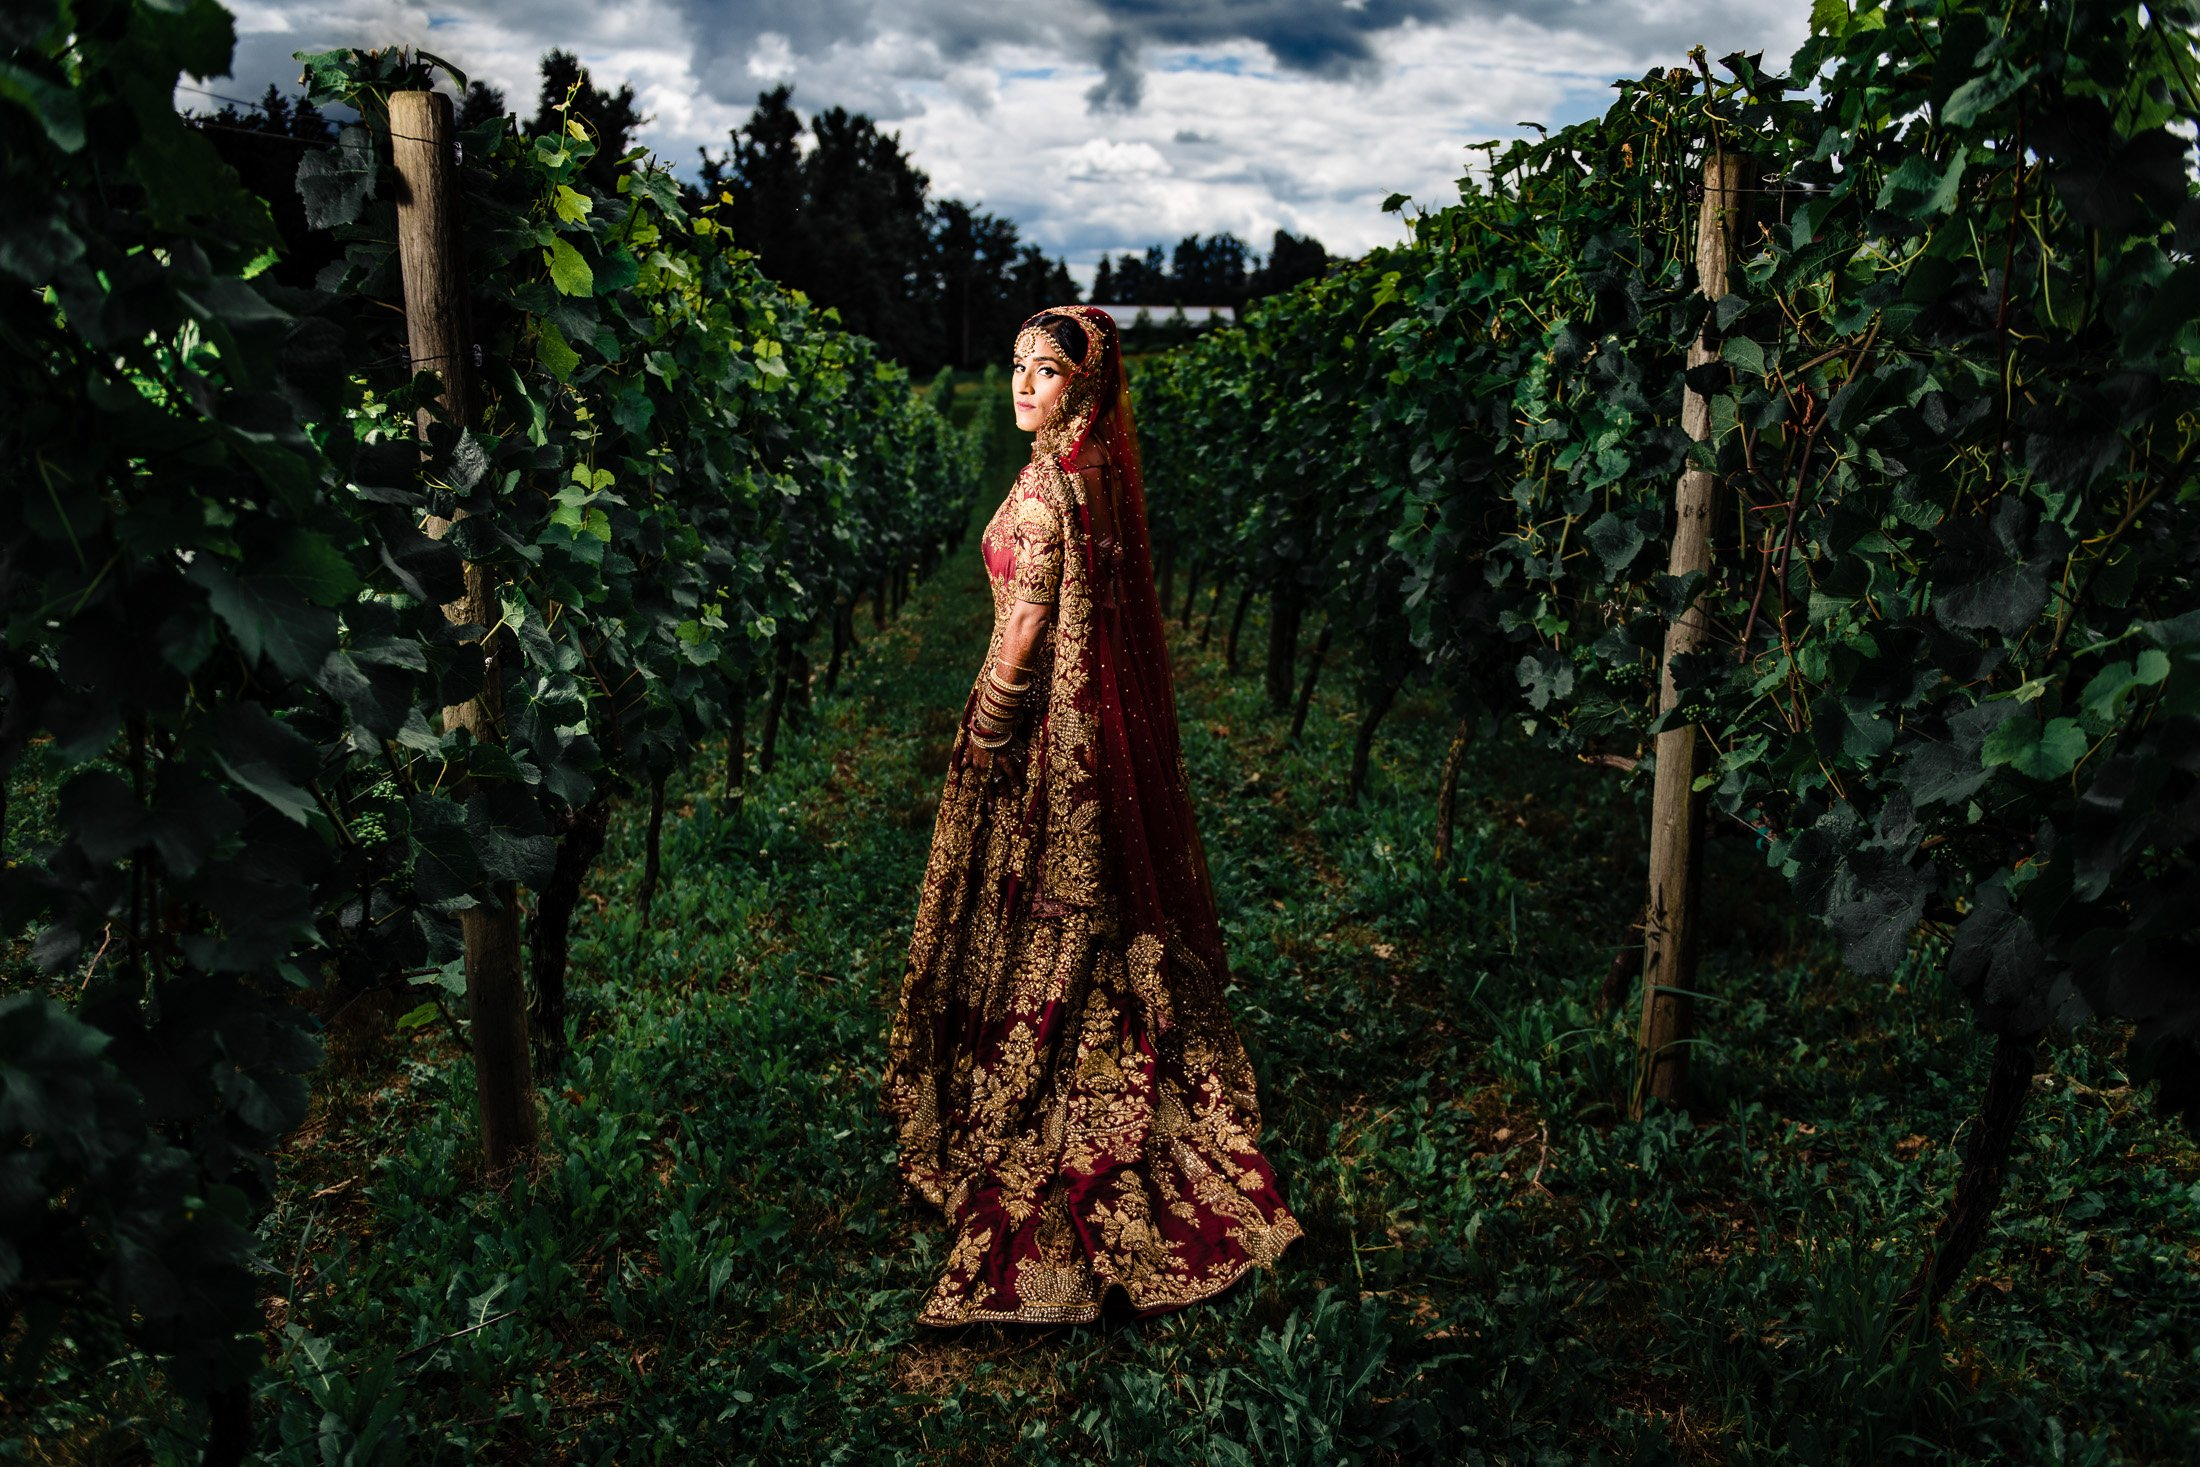 074 - where can I get winery wedding photos